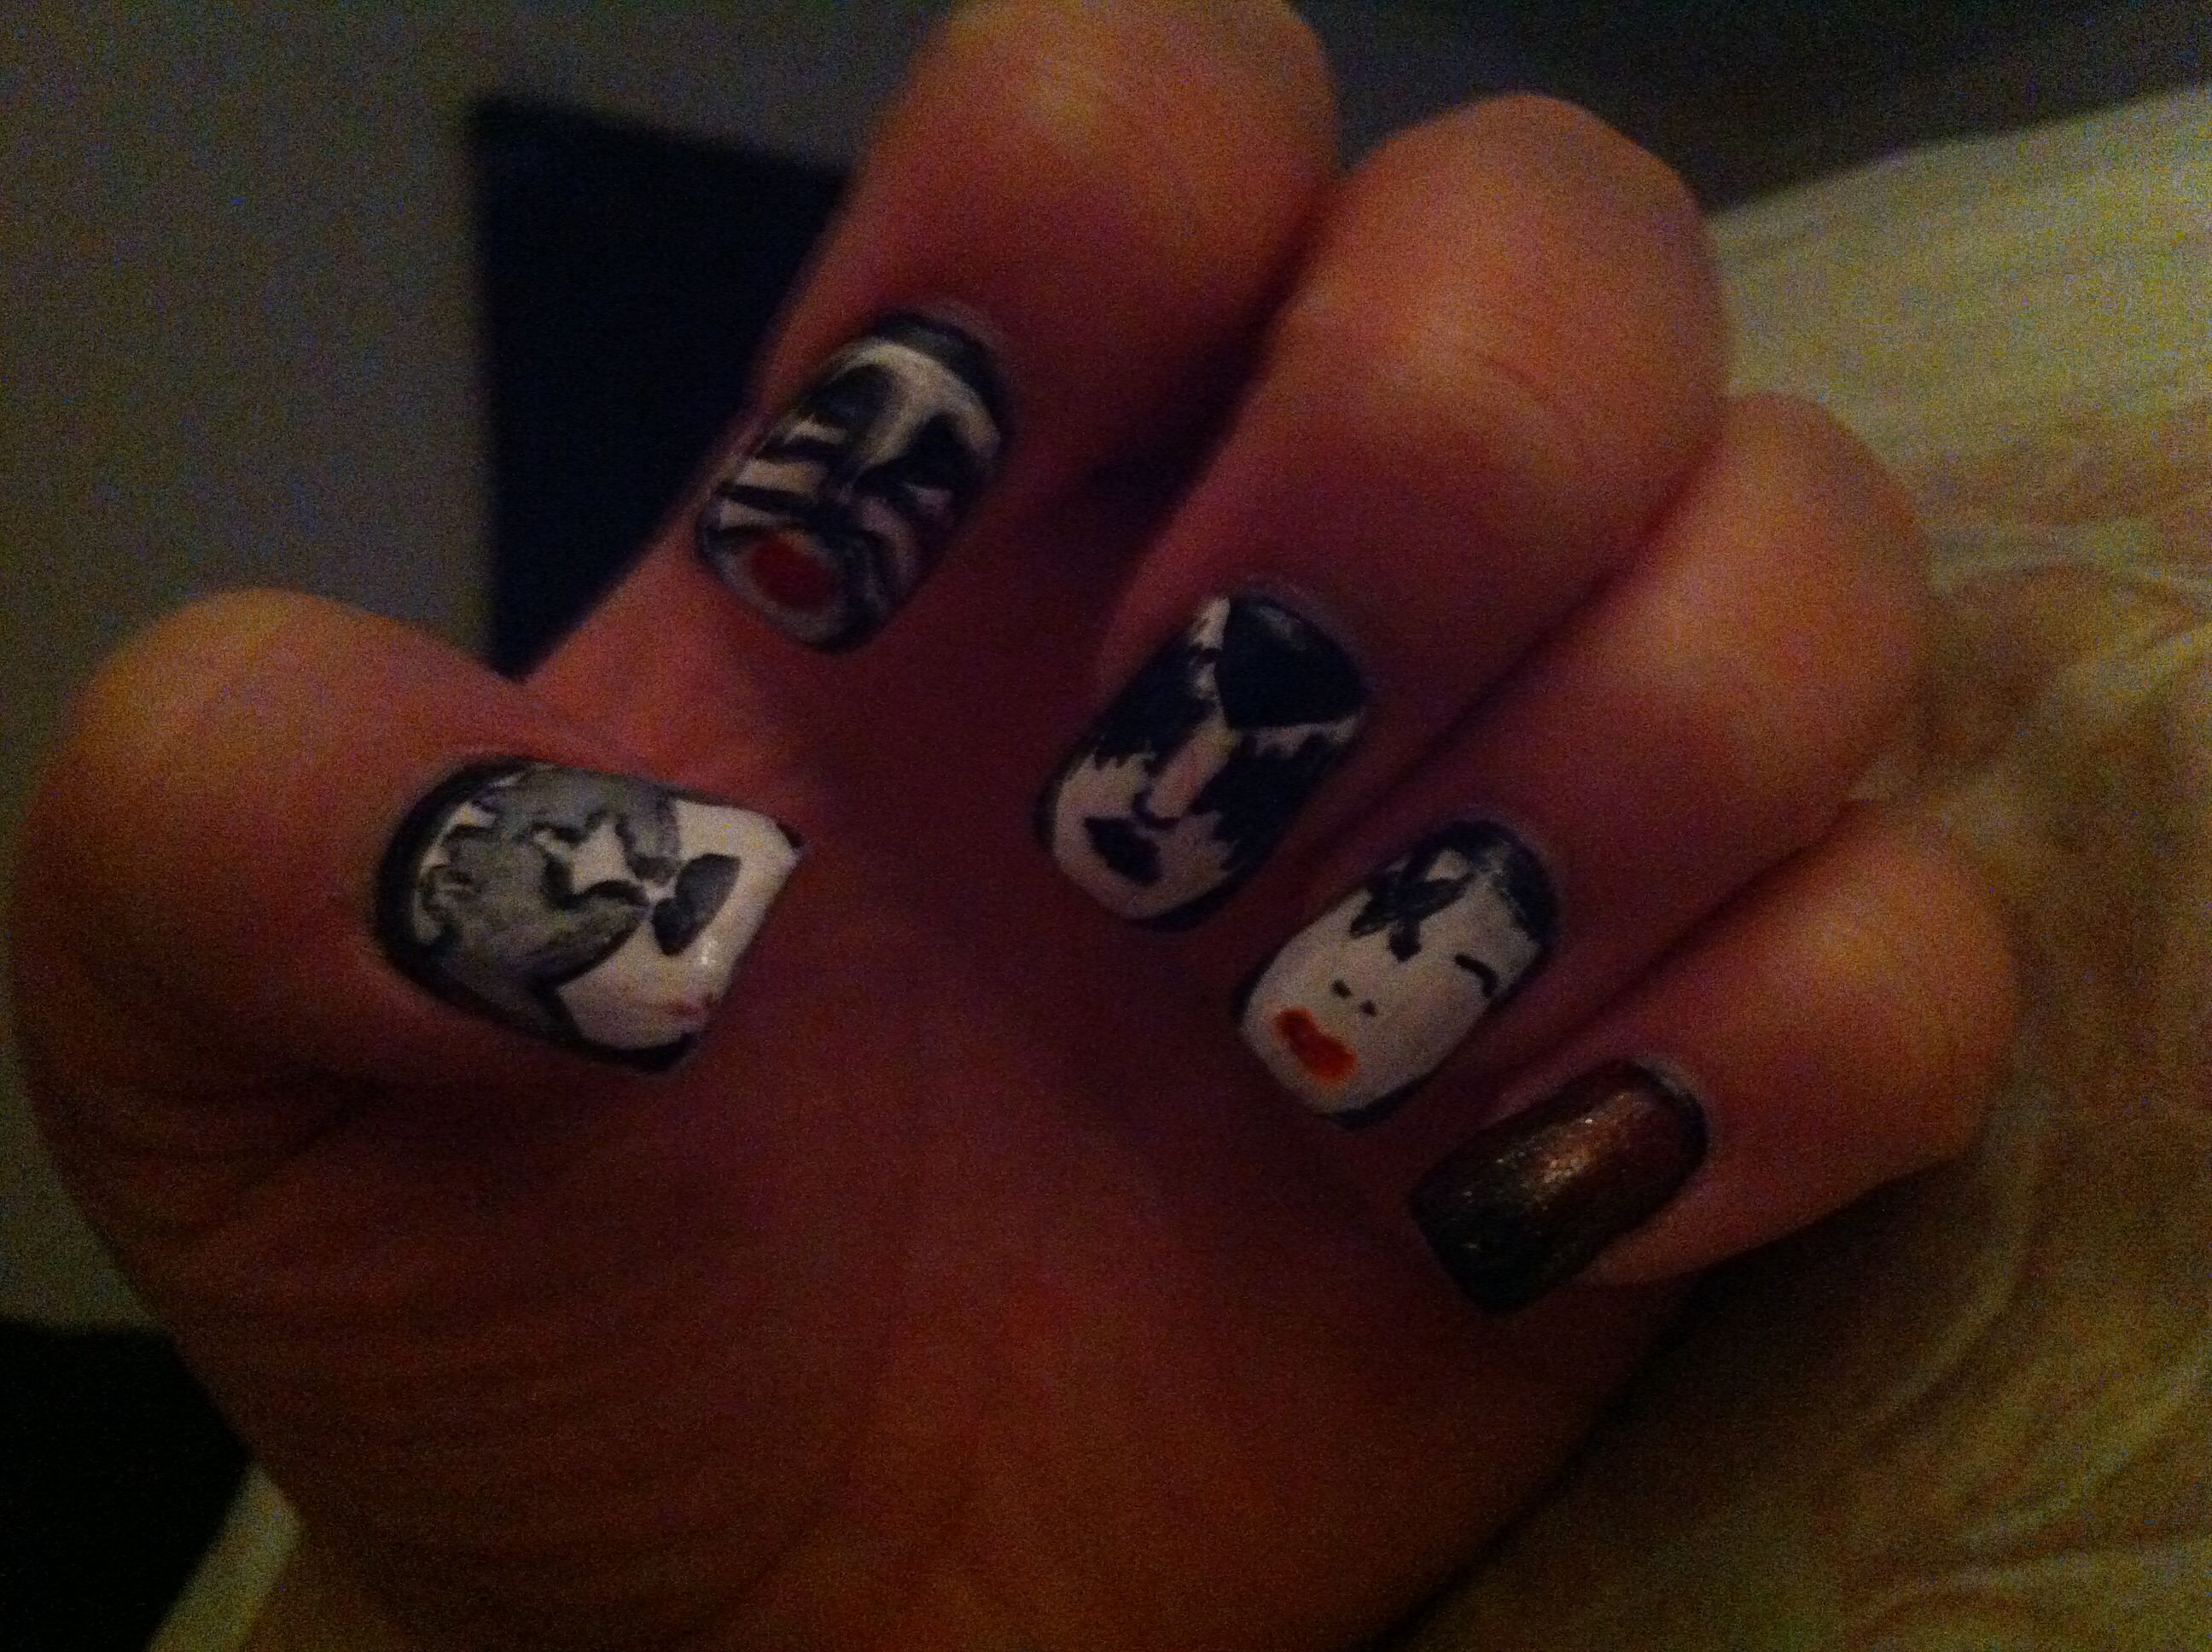 Heres A Close Up Of My Nail Art That I Did For The Kiss And Def